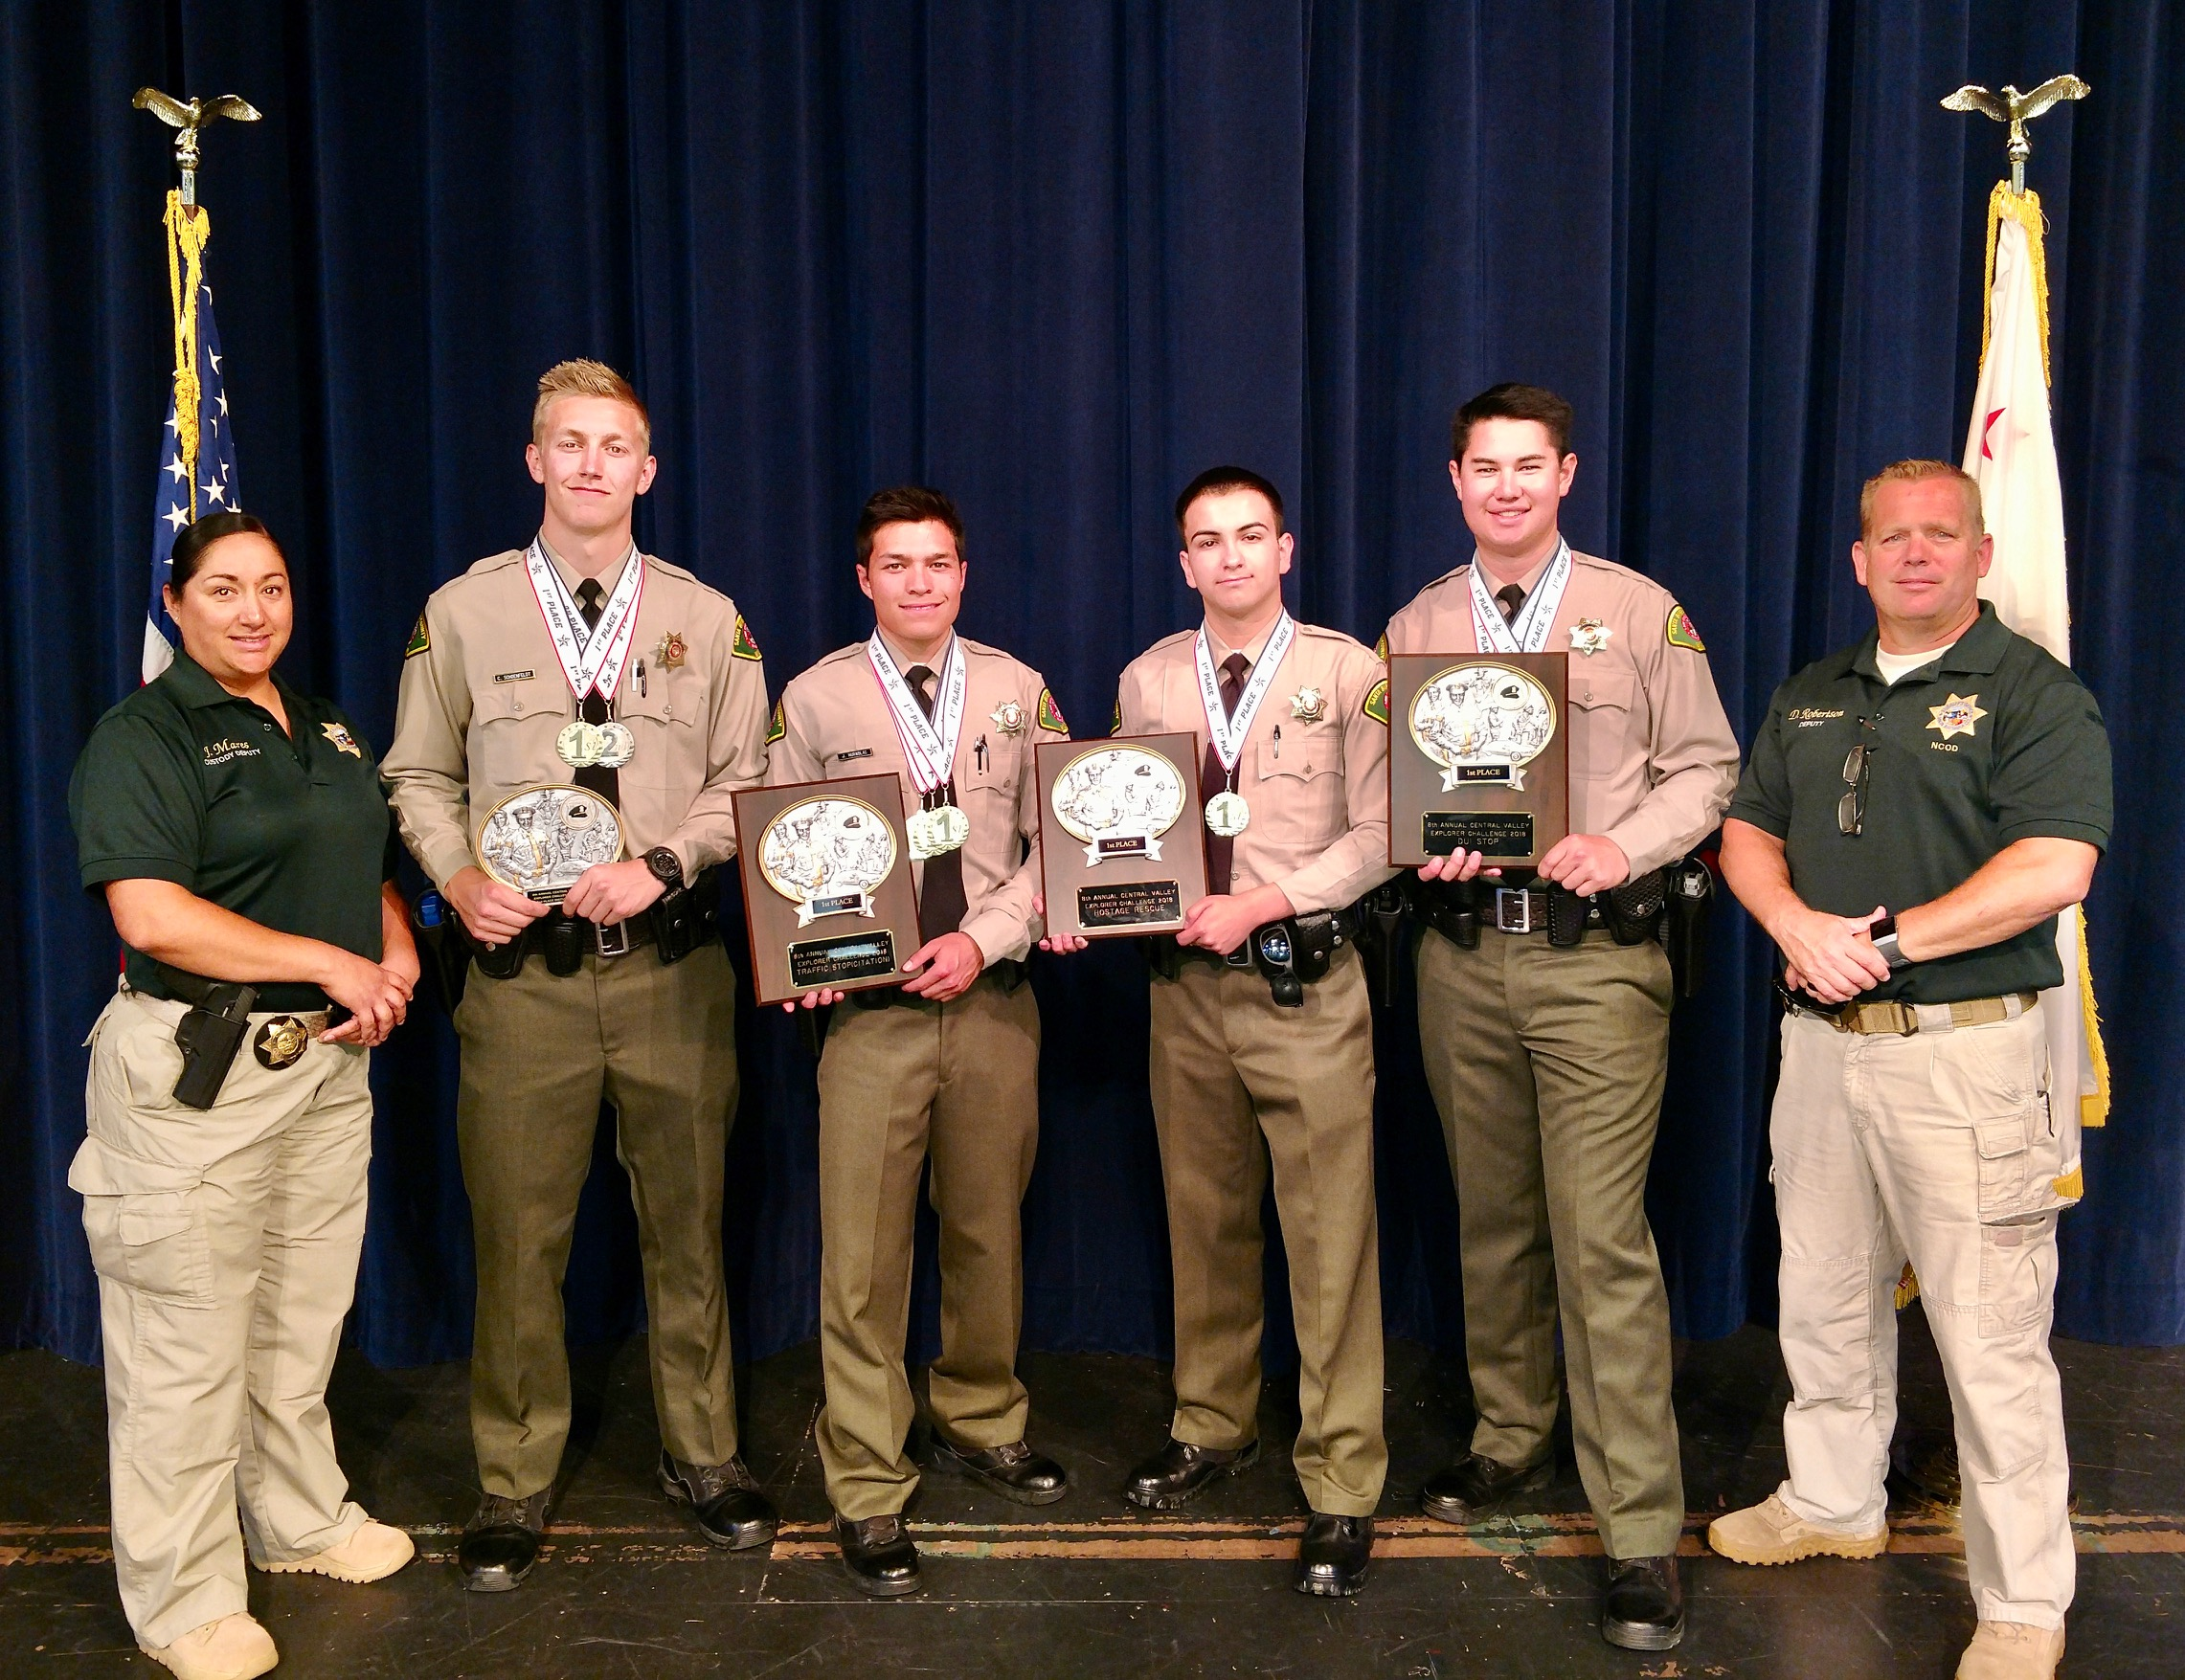 Explorer Post #32 Receives Awards at Central Valley Law